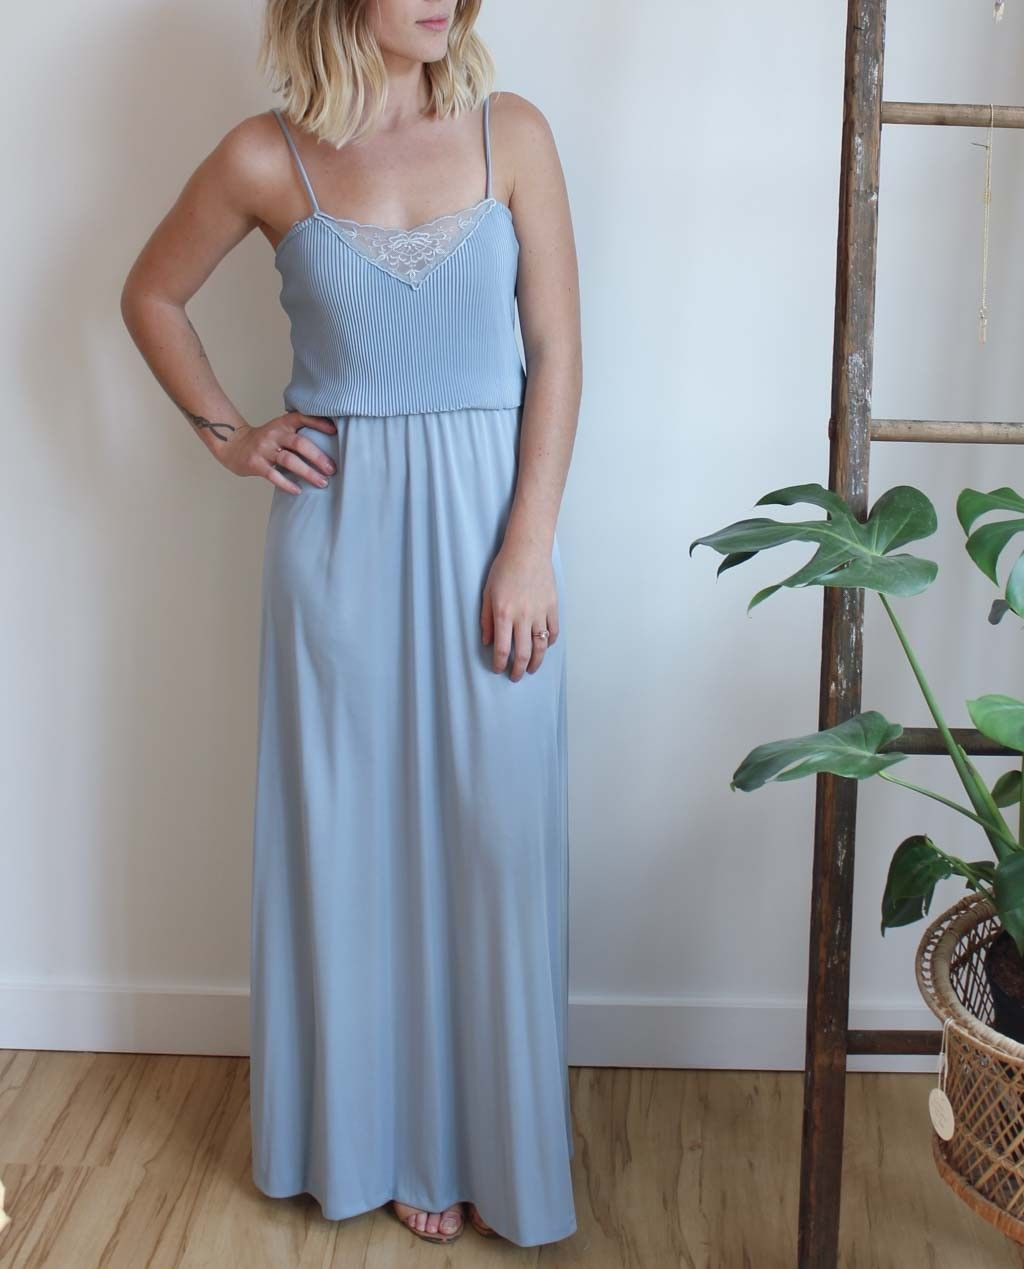 Vintage 1970s Periwinkle Dress with Lace Inset #vintage #wedding #spring #shop #style #dress #dearsociety